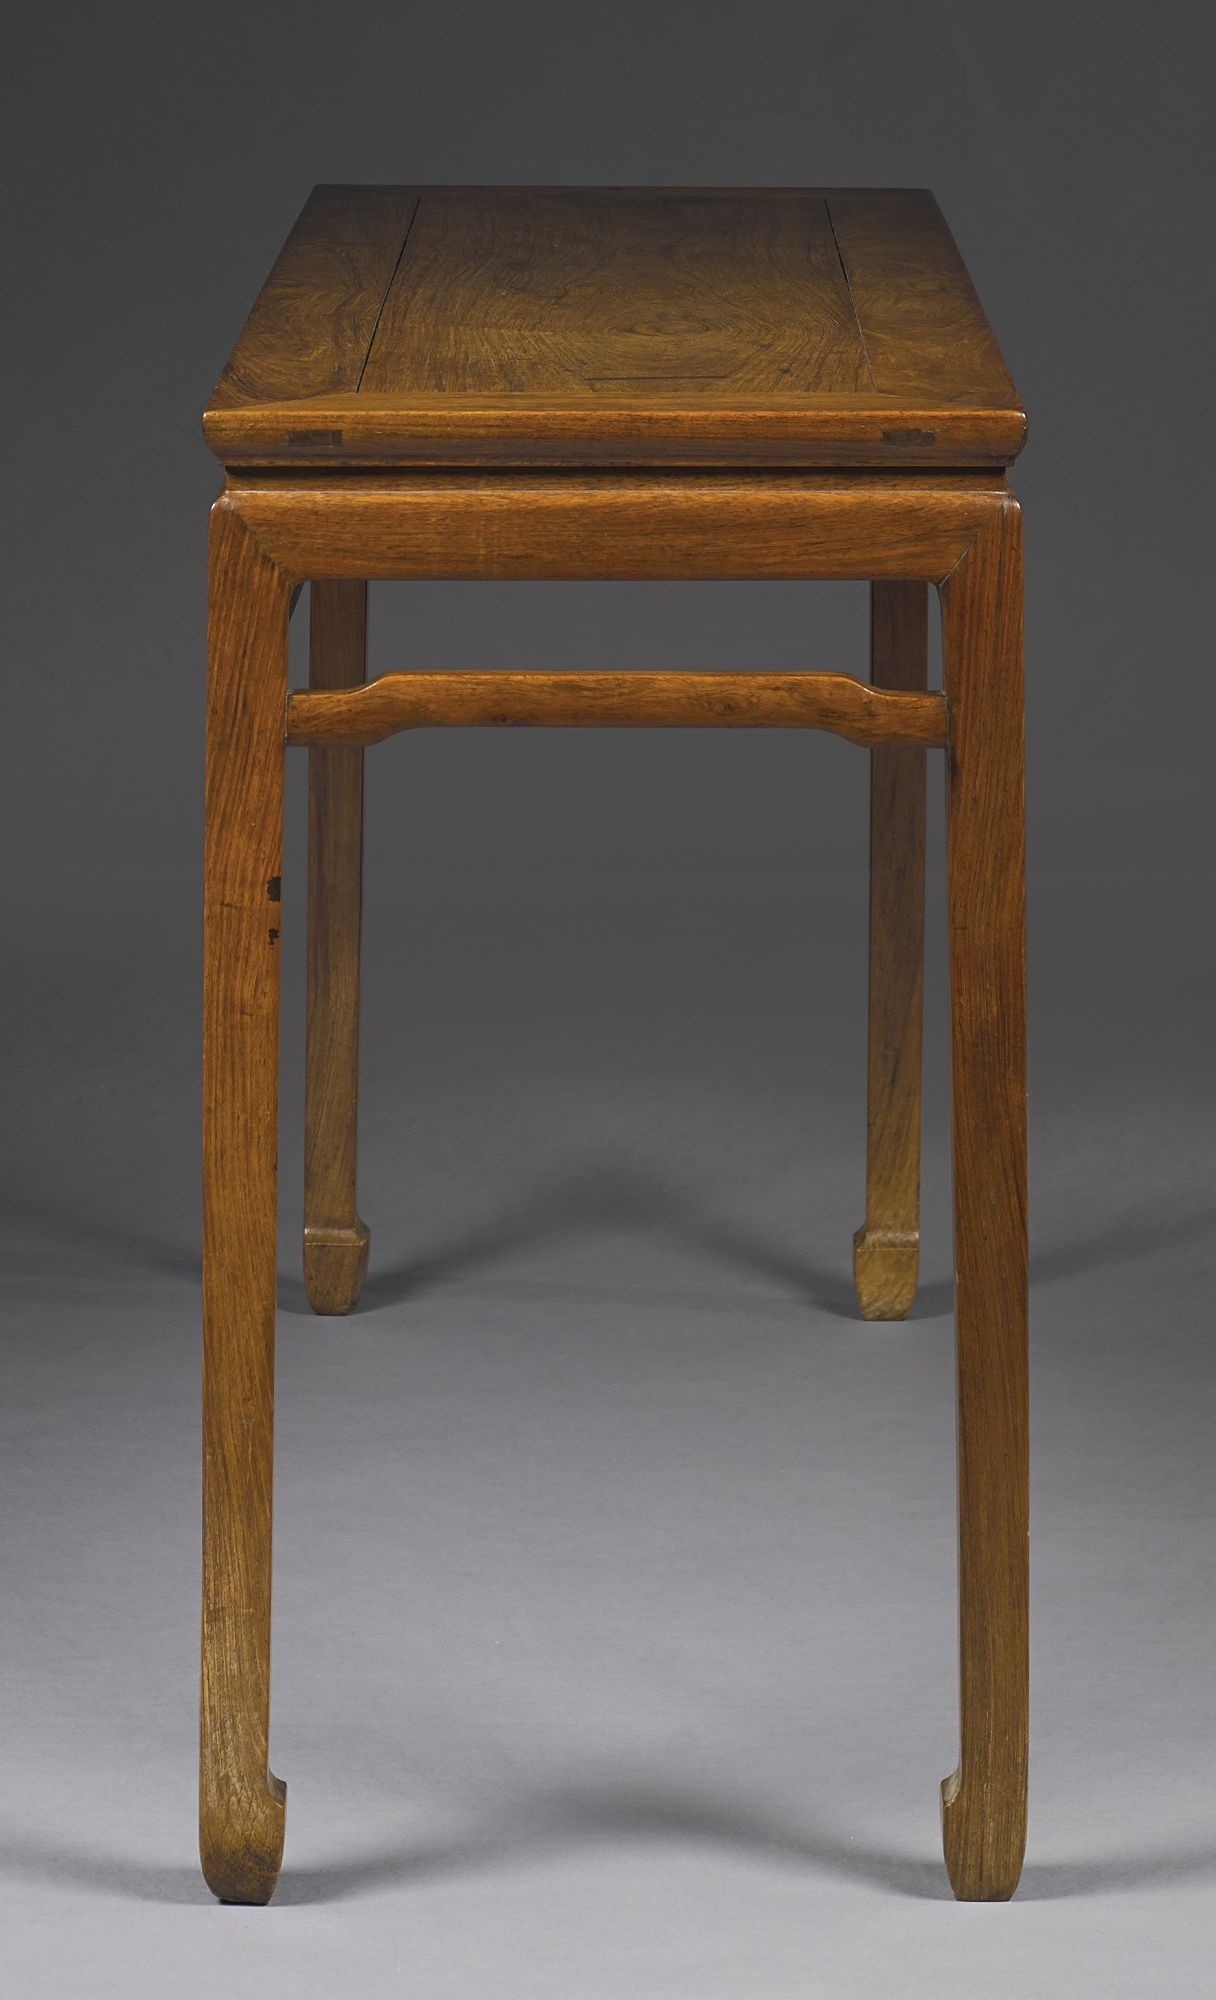 A Huanghuali Side Table Tiaozhuo Ming Dynasty 17th Century